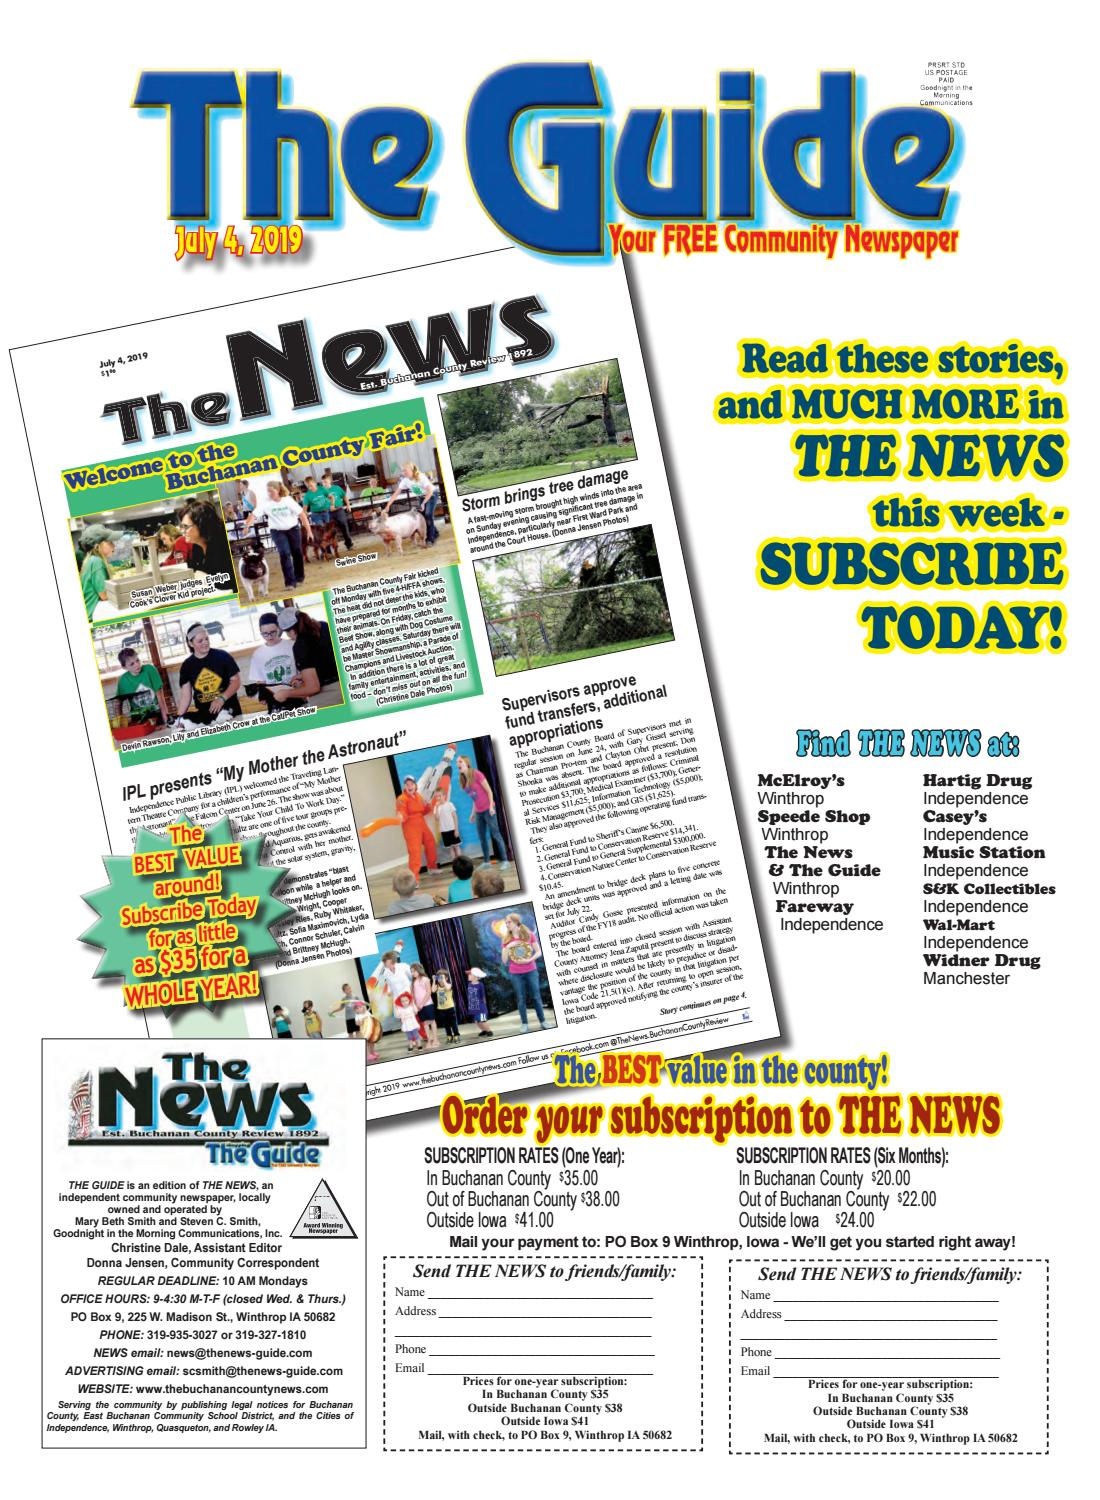 THE GUIDE 7 4 2019 by THE NEWS | Buchanan County Review - issuu